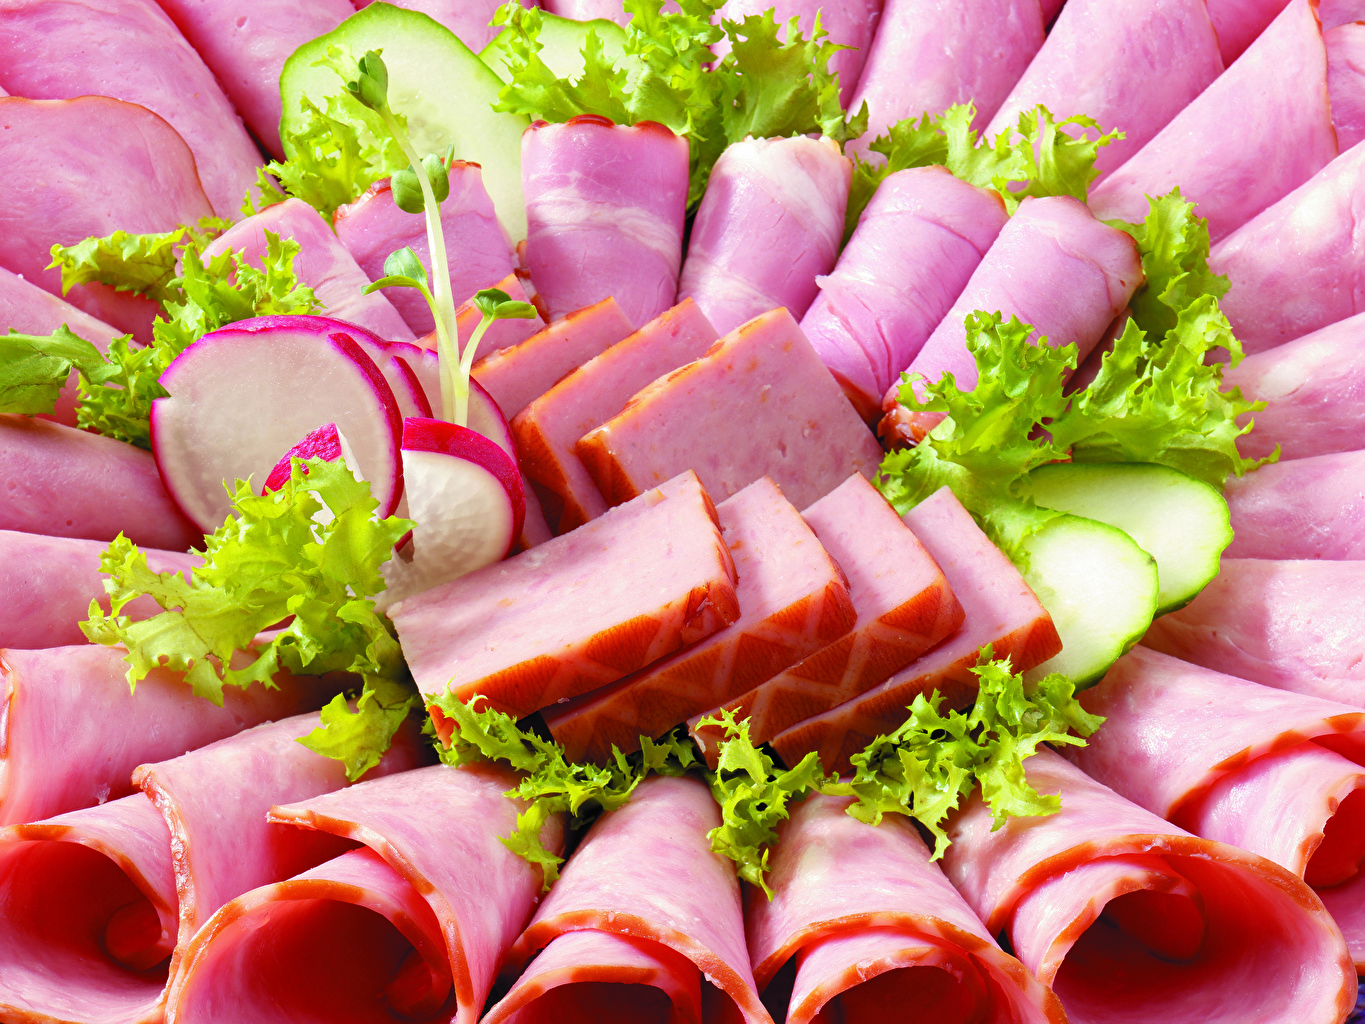 Photo Sausage Ham Food Vegetables Sliced food Meat products